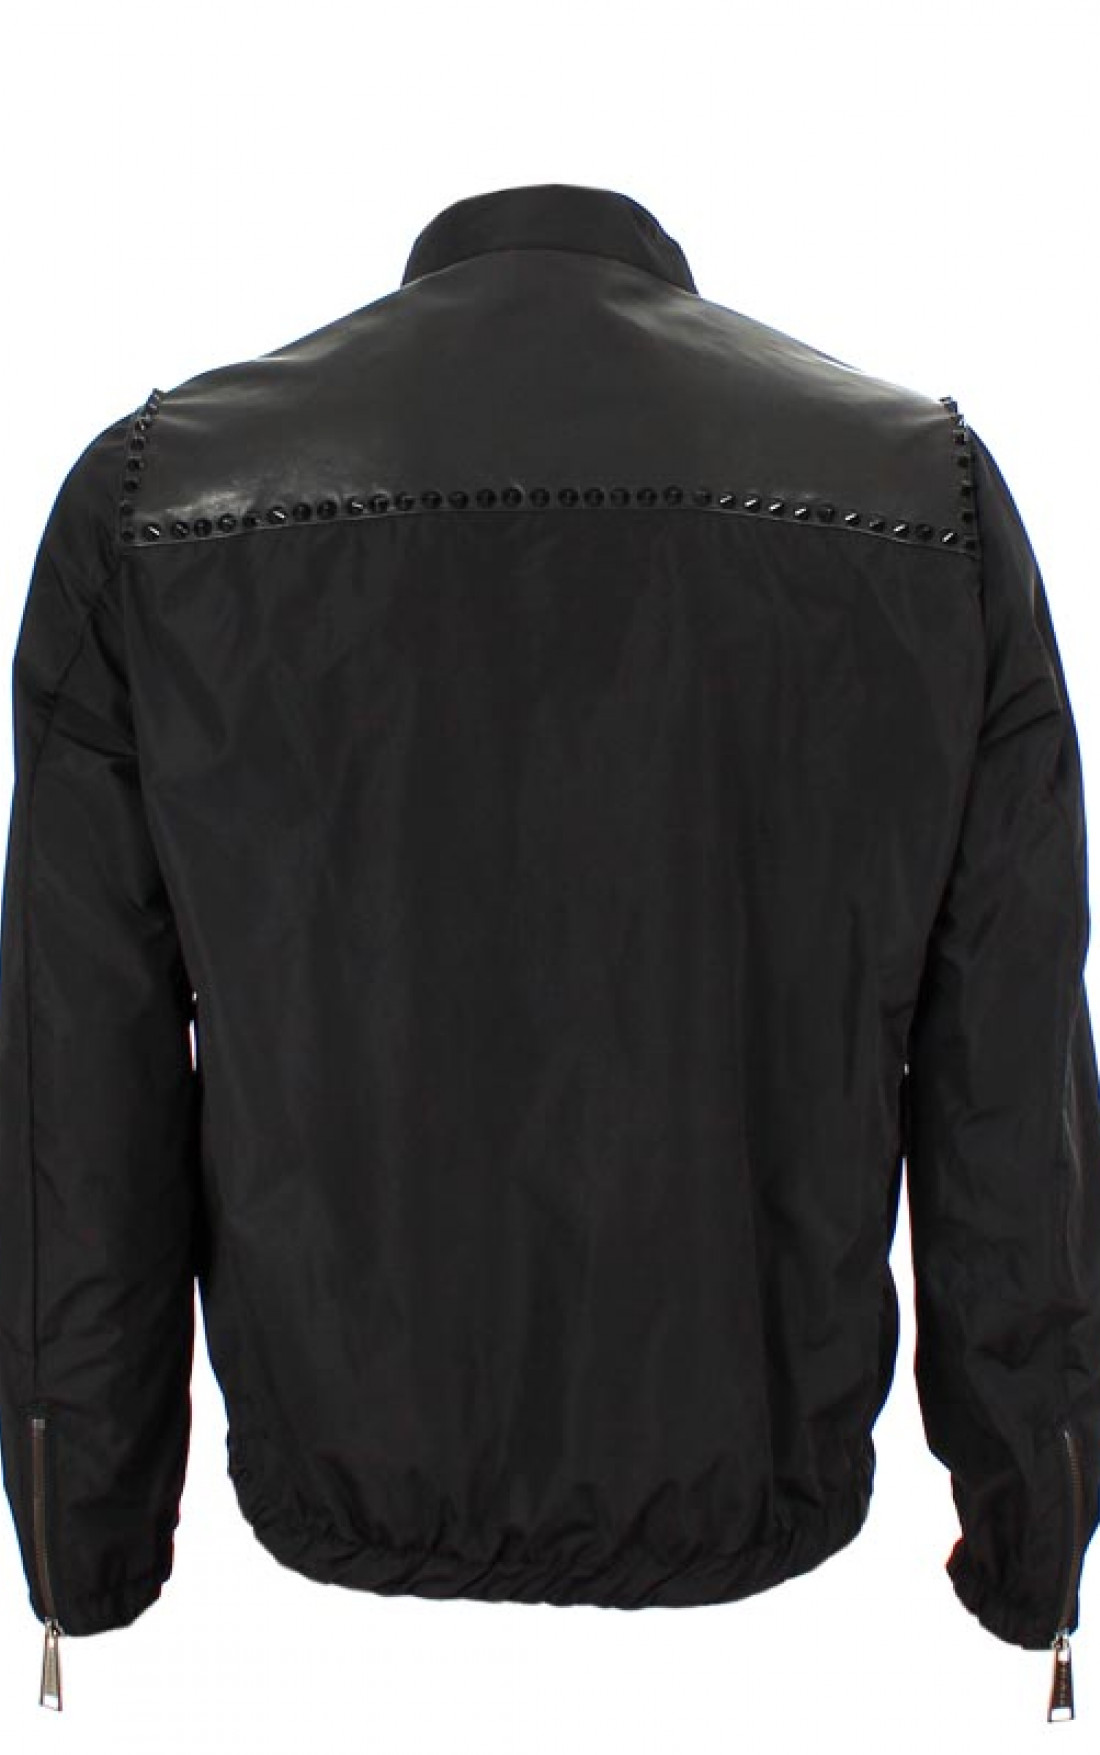 Philipp-Plein-Mens-Basic-Rider-Jacket-Navy-Black-Boudi-UK-Back